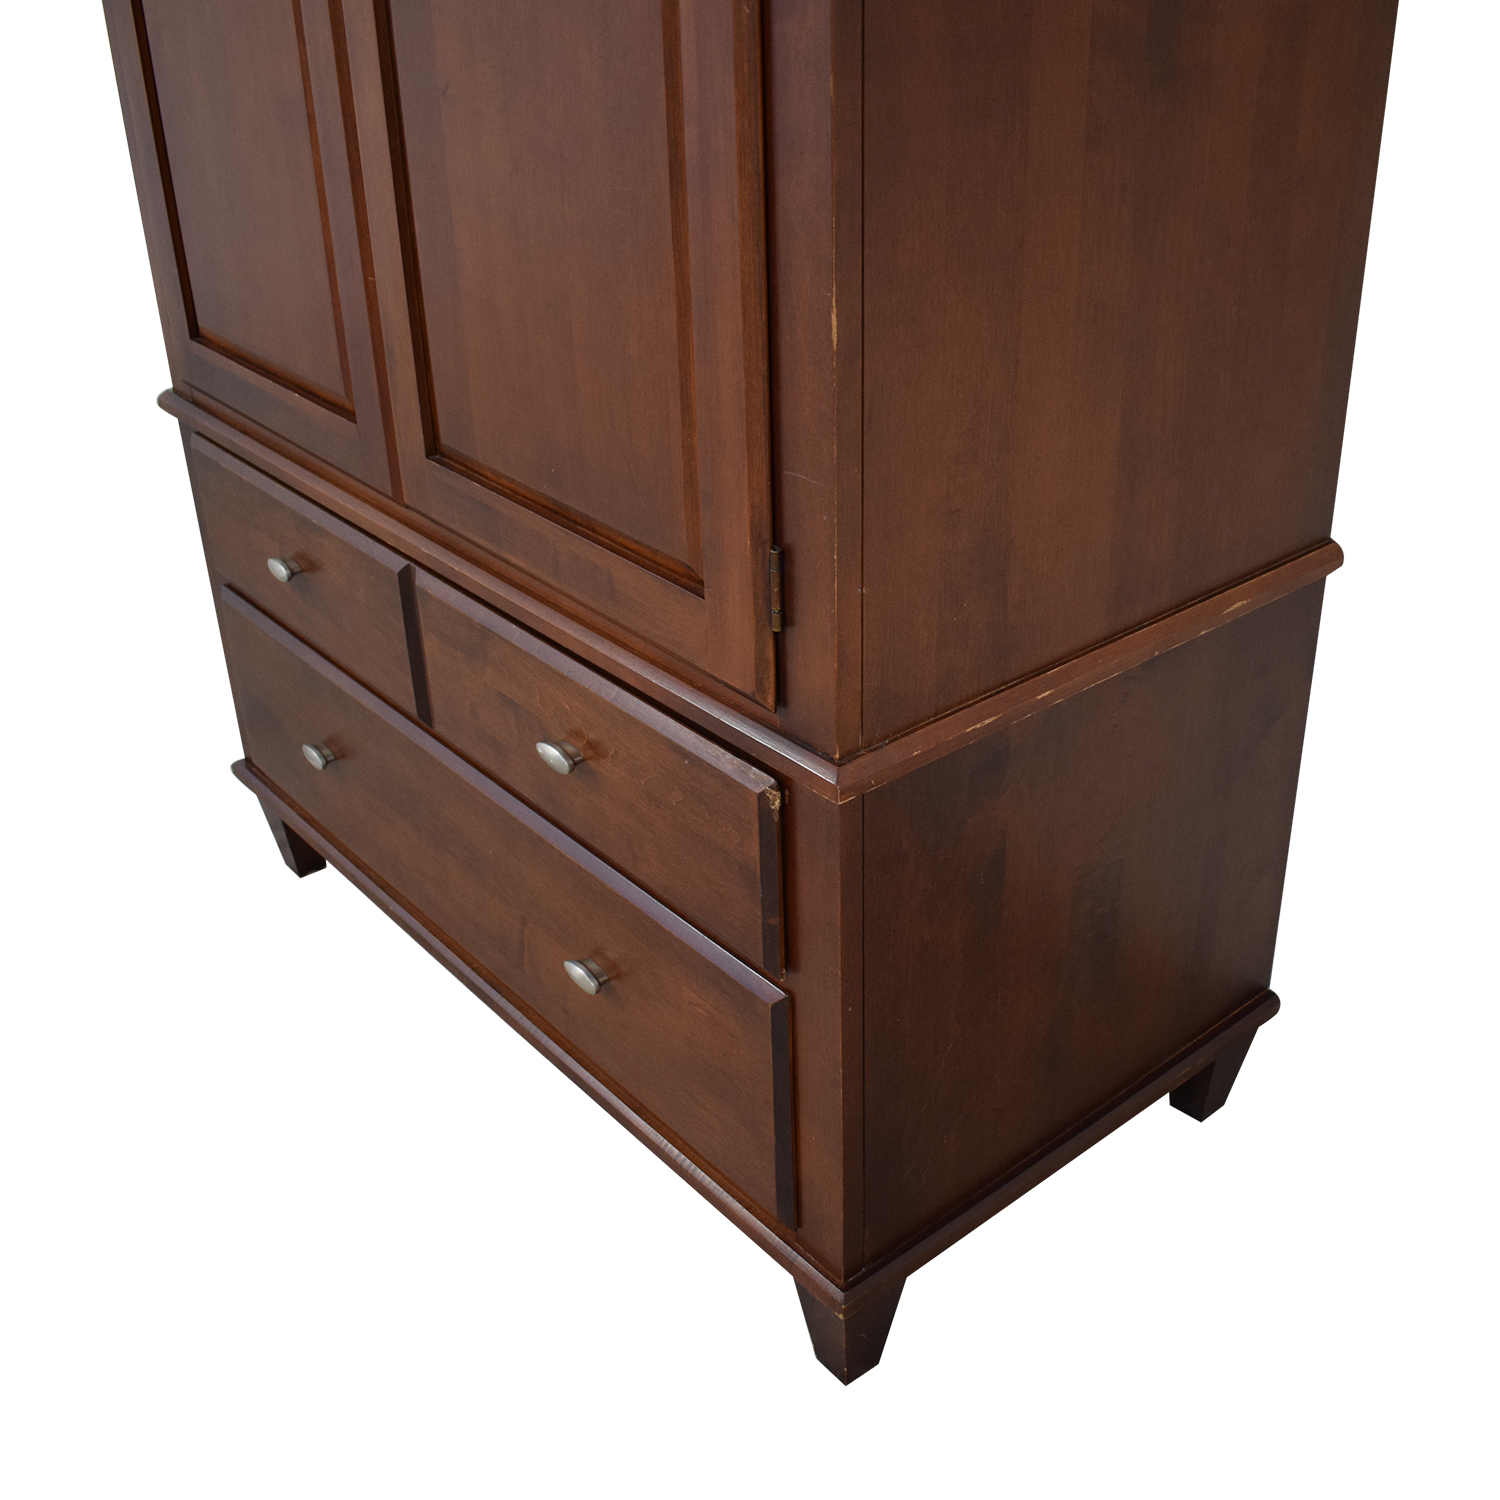 Ethan Allen Ethan Allen Four Drawer Armoire on sale